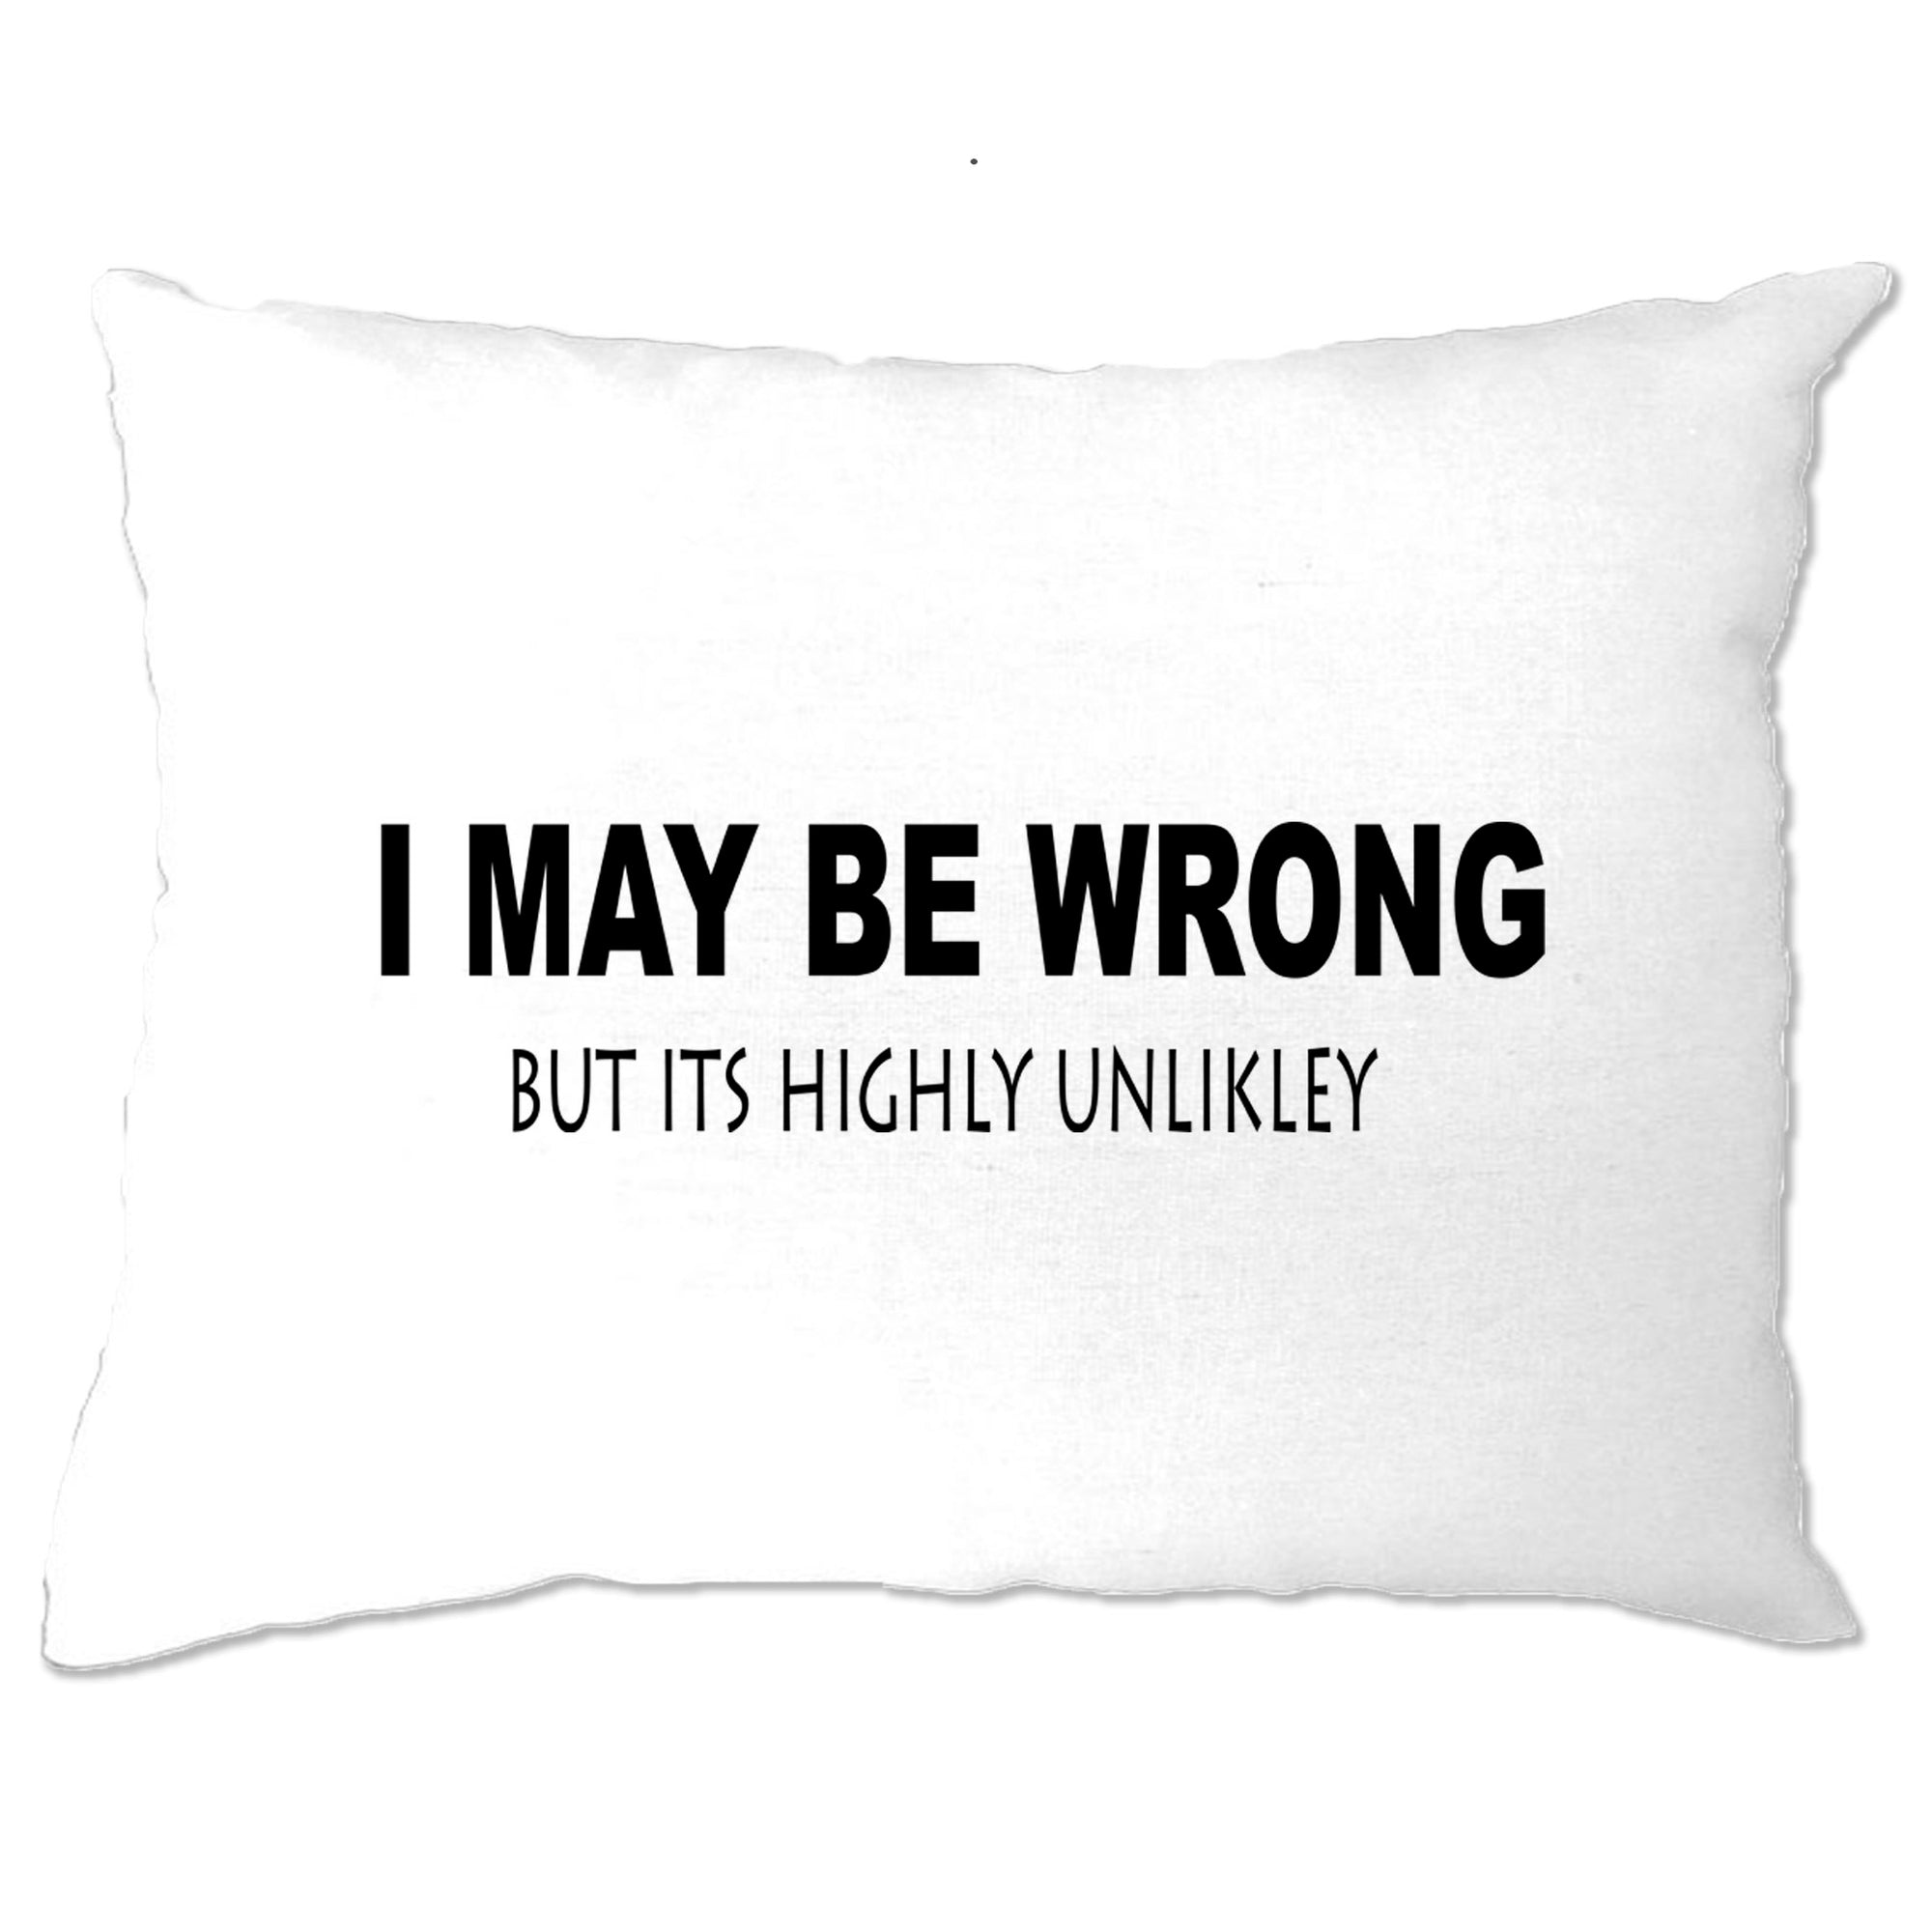 Funny Pillow Case I May Be Wrong But Its Highly Unlikley